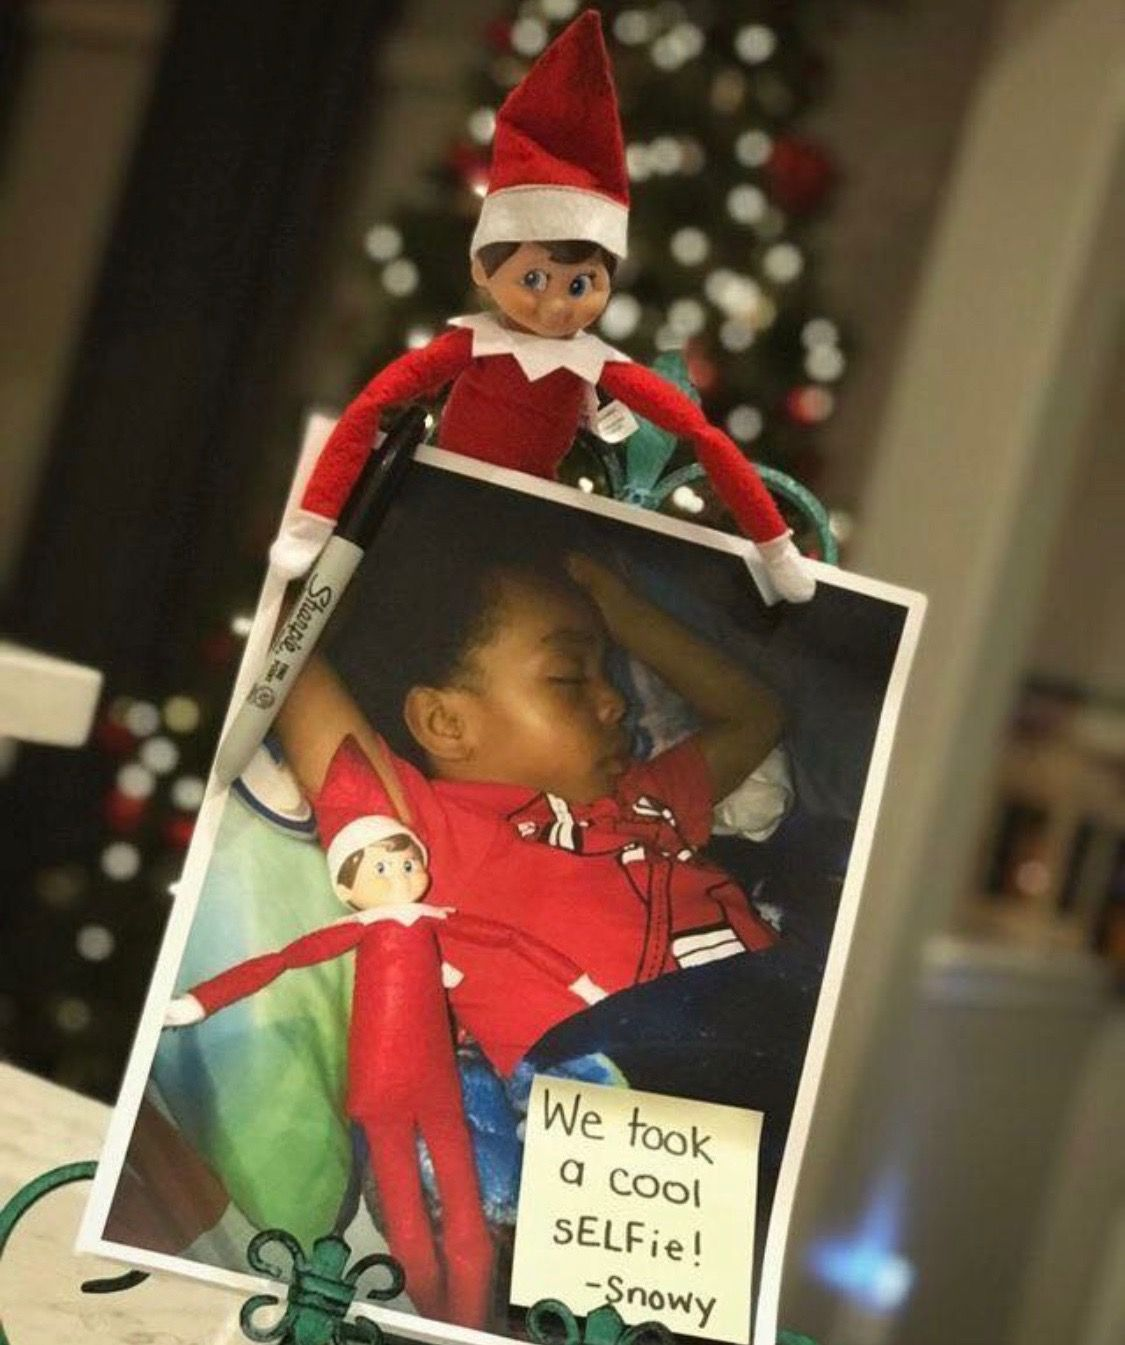 Christmas Elf On The Shelf Images.Pin By Meghan Saunders On Ideas For Rosie The Elf On The